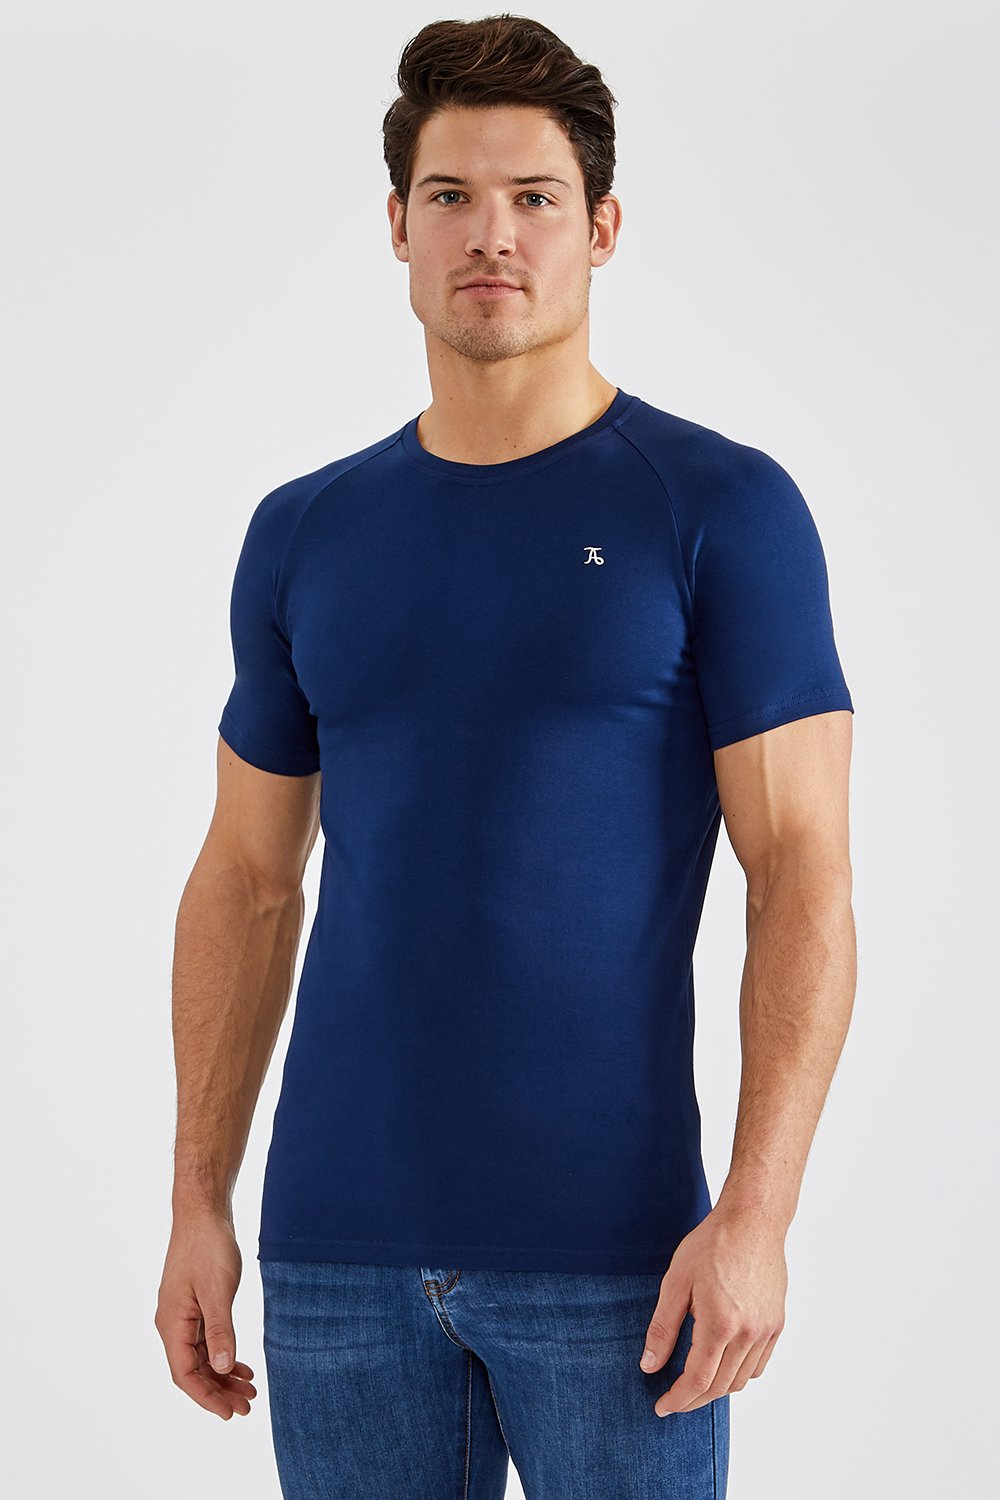 Essential T-Shirt in Navy